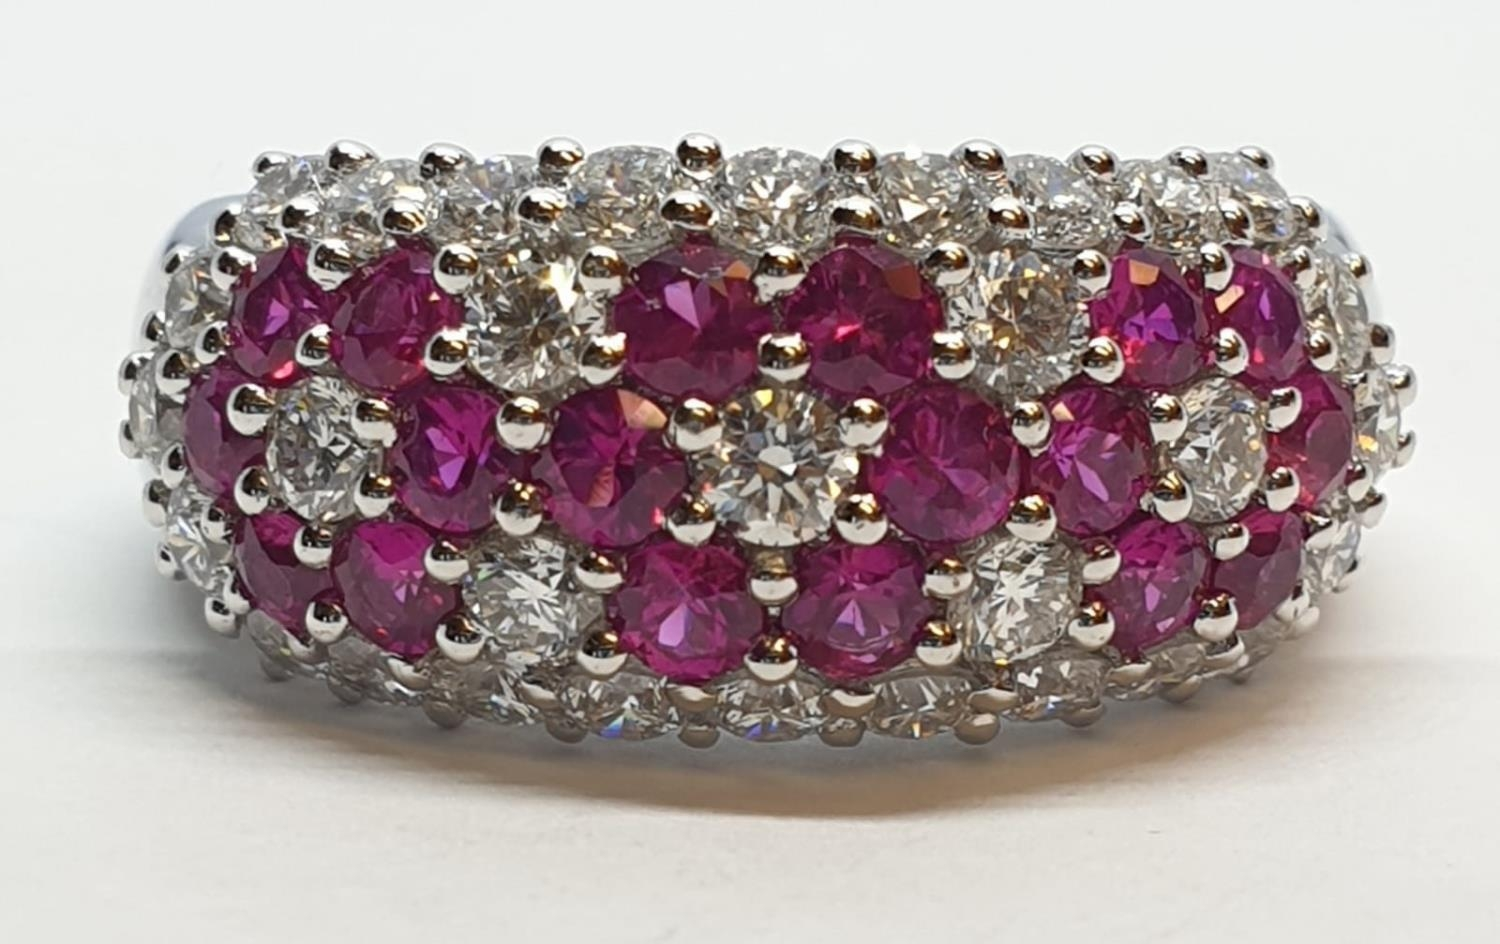 18ct white gold ring with over 1ct ruby and 1.8ct diamonds in flower design, weight 9.39g and size M - Image 5 of 11